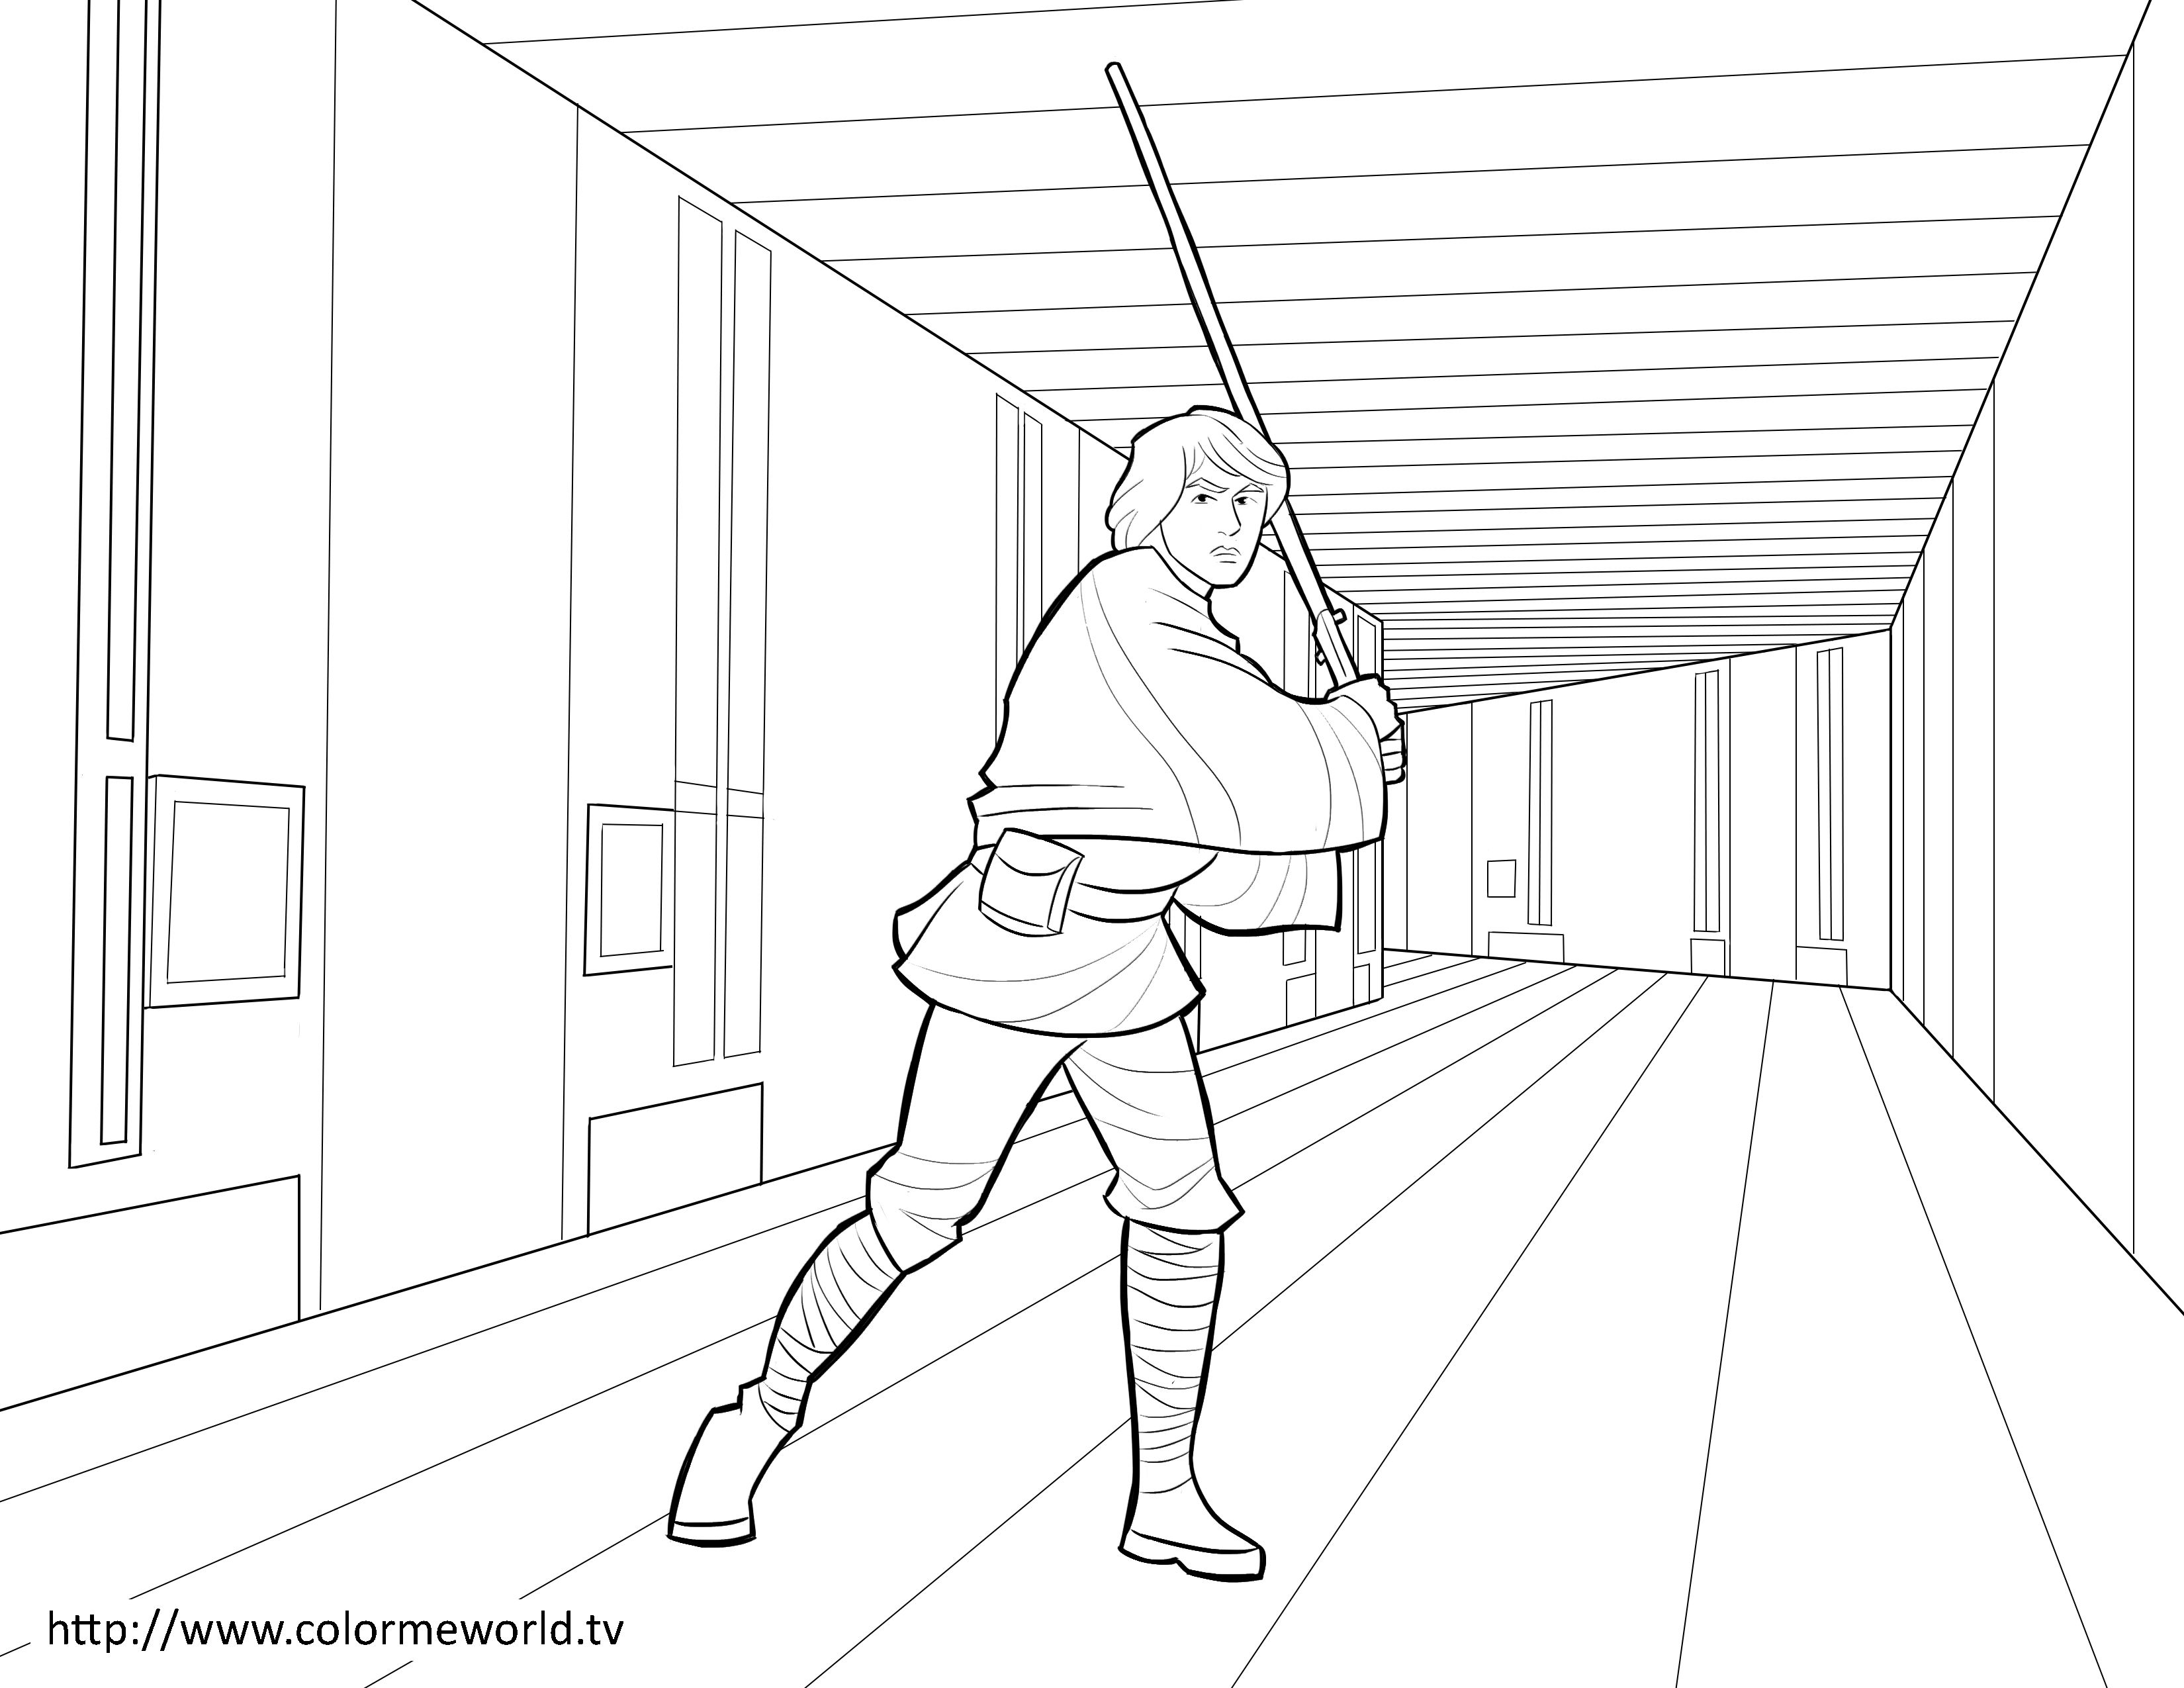 Luke Skywalker PDF Printable Coloring Page - | LineArt: Star Wars ...